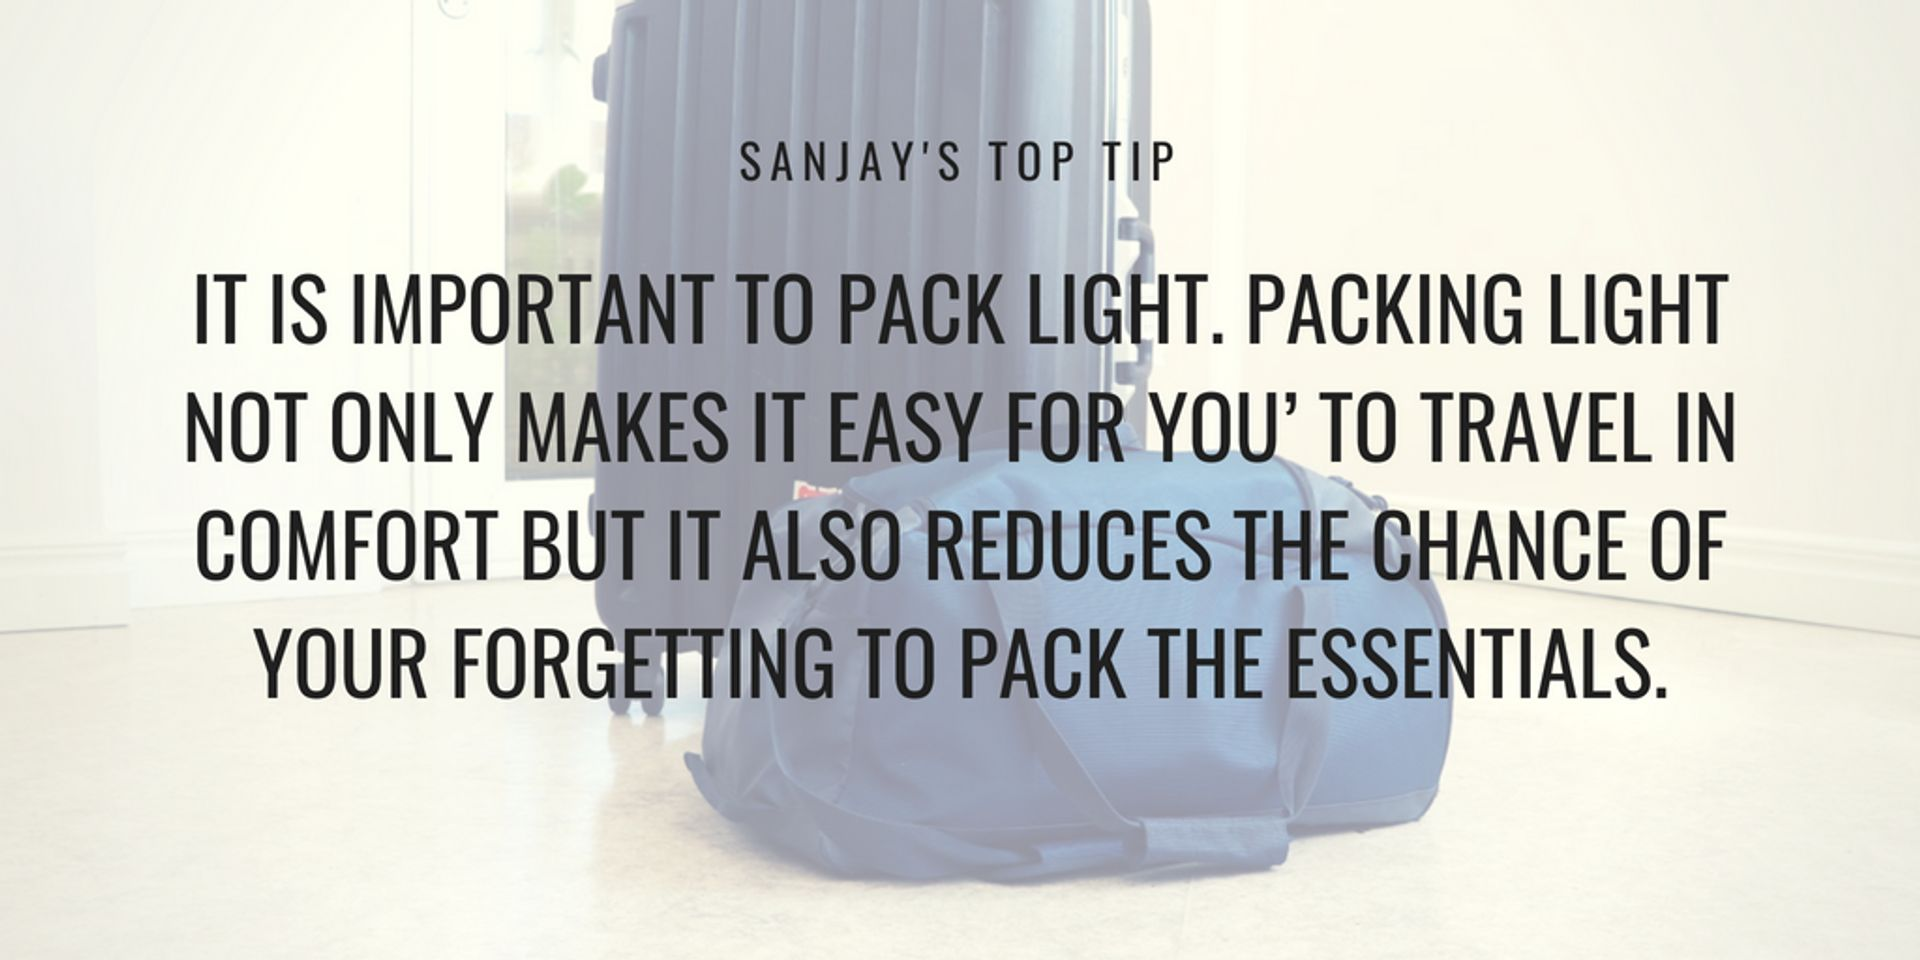 Caption reads 'It is important to pack light'.